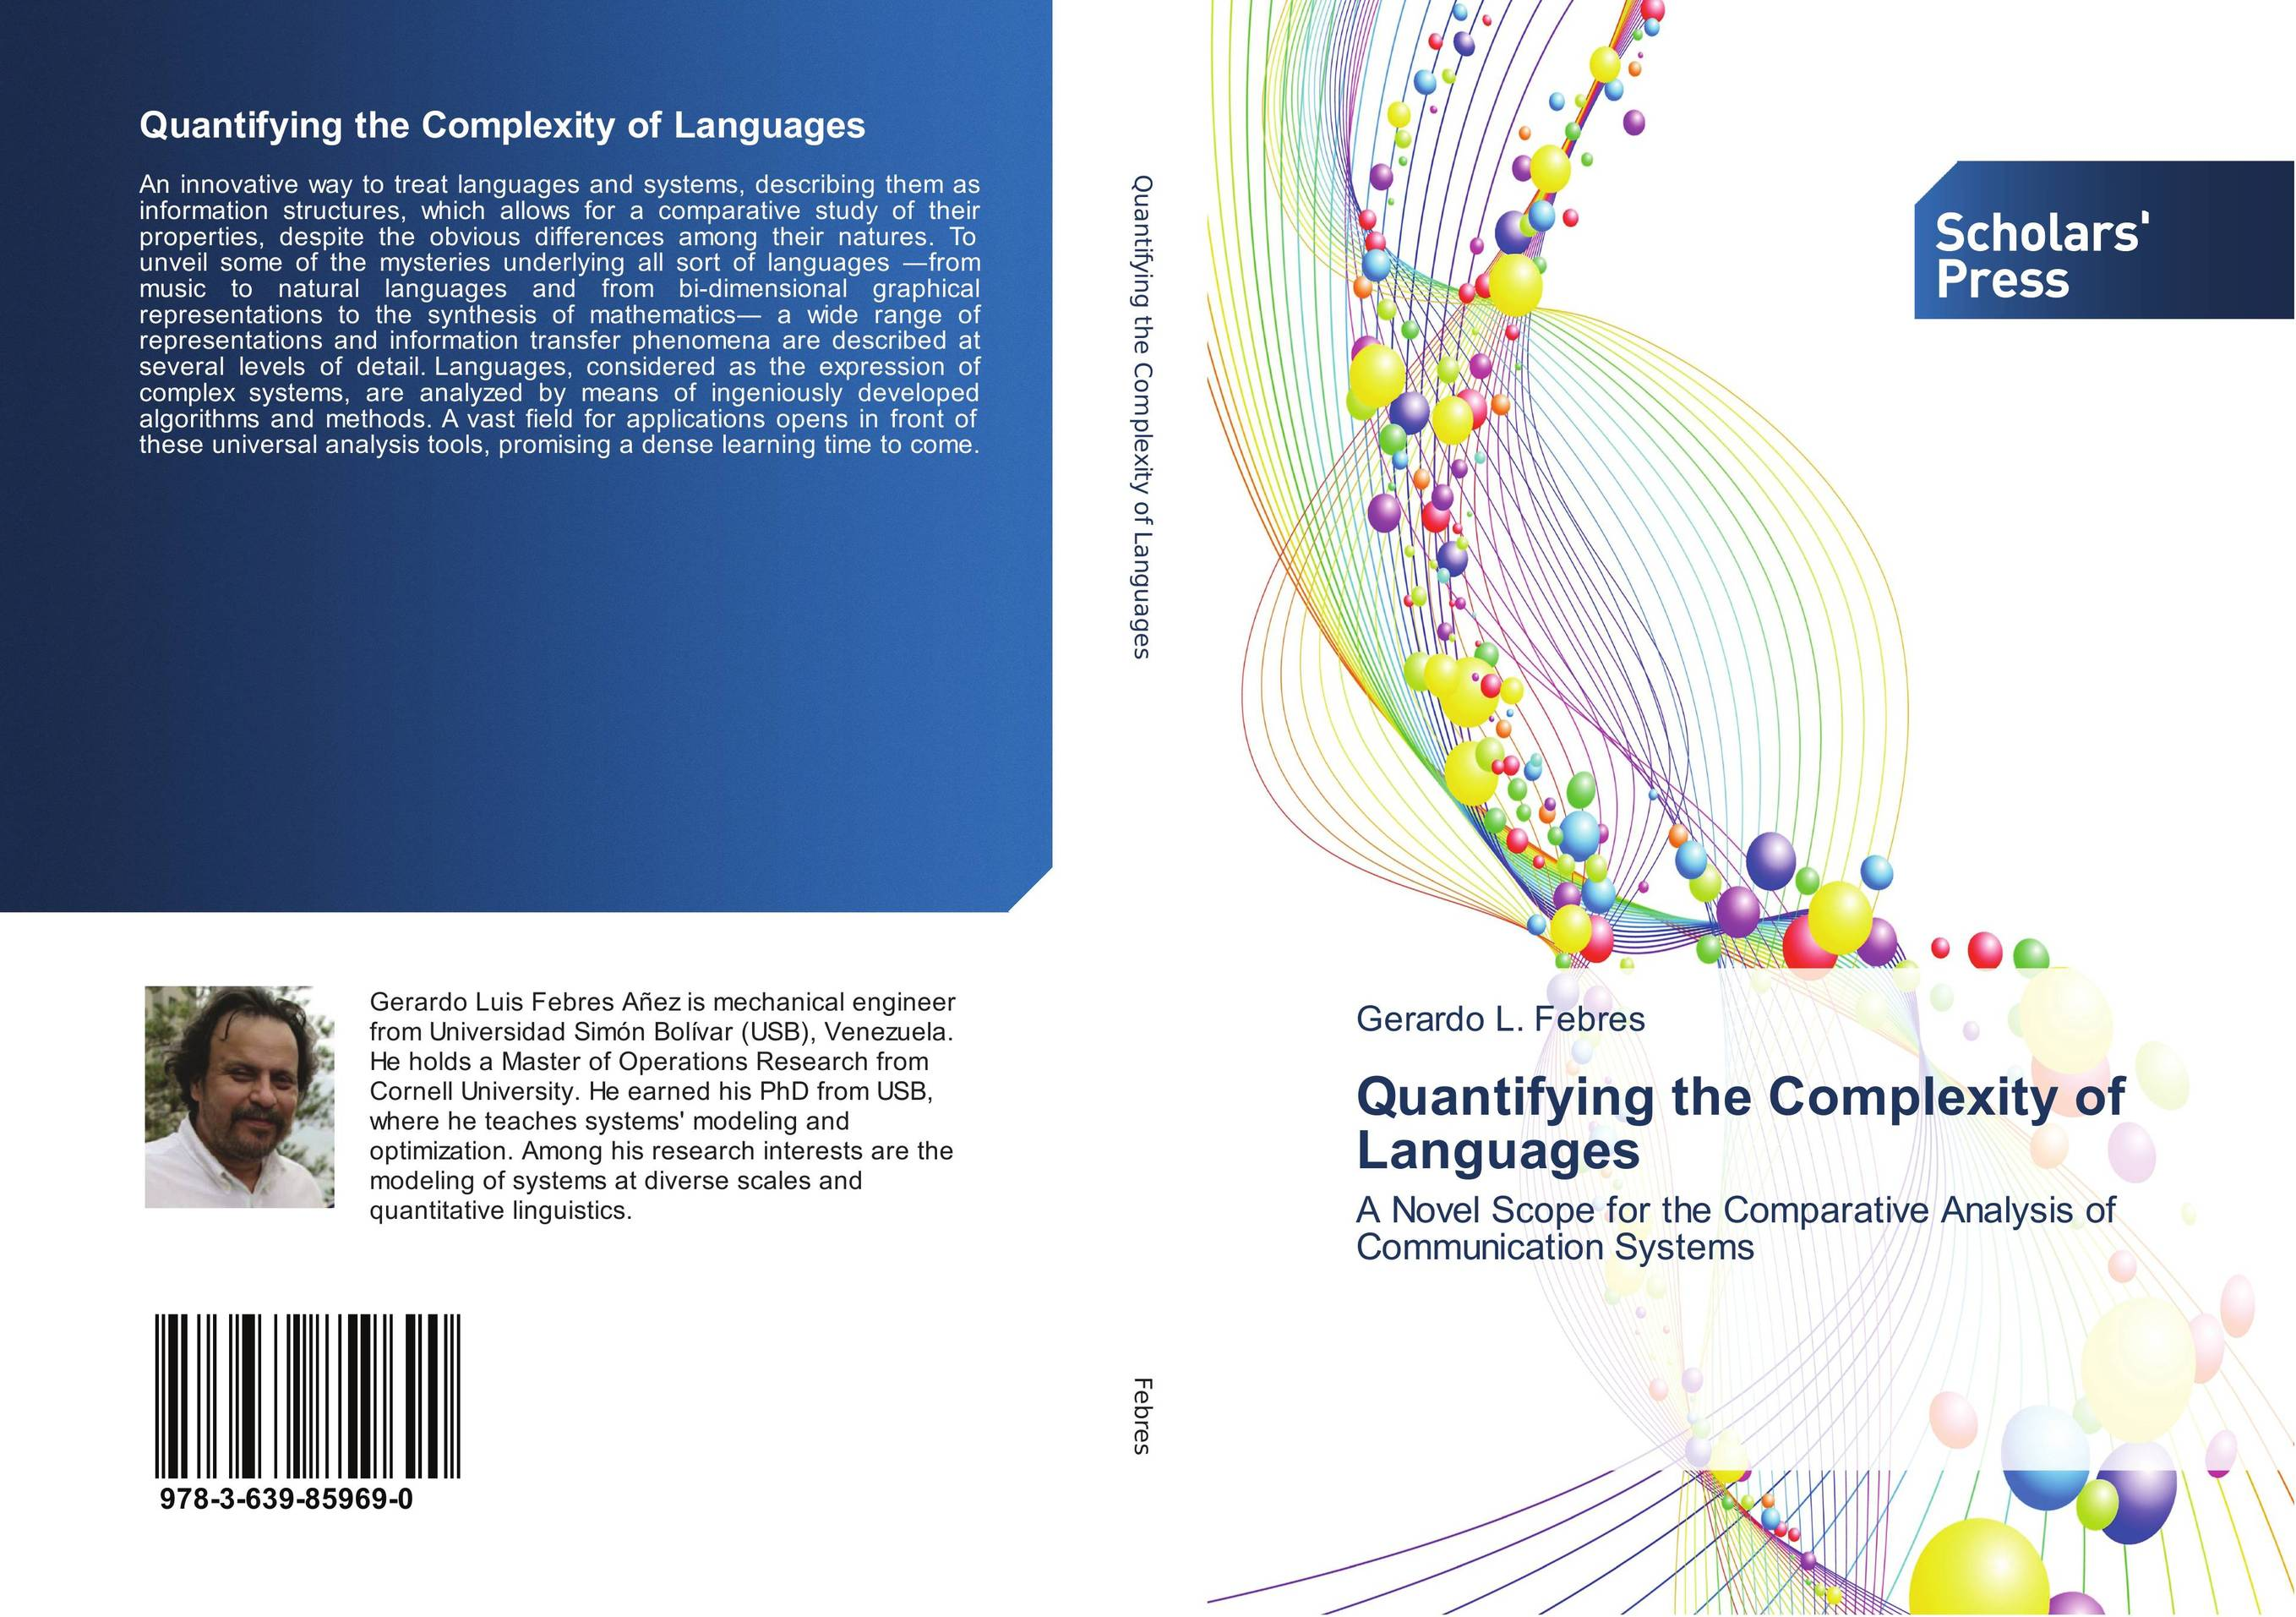 Quantifying the Complexity of Languages shamima akhter m harun ar rashid and hammad uddin comparative efficiency analysis of broiler farming in bangladesh